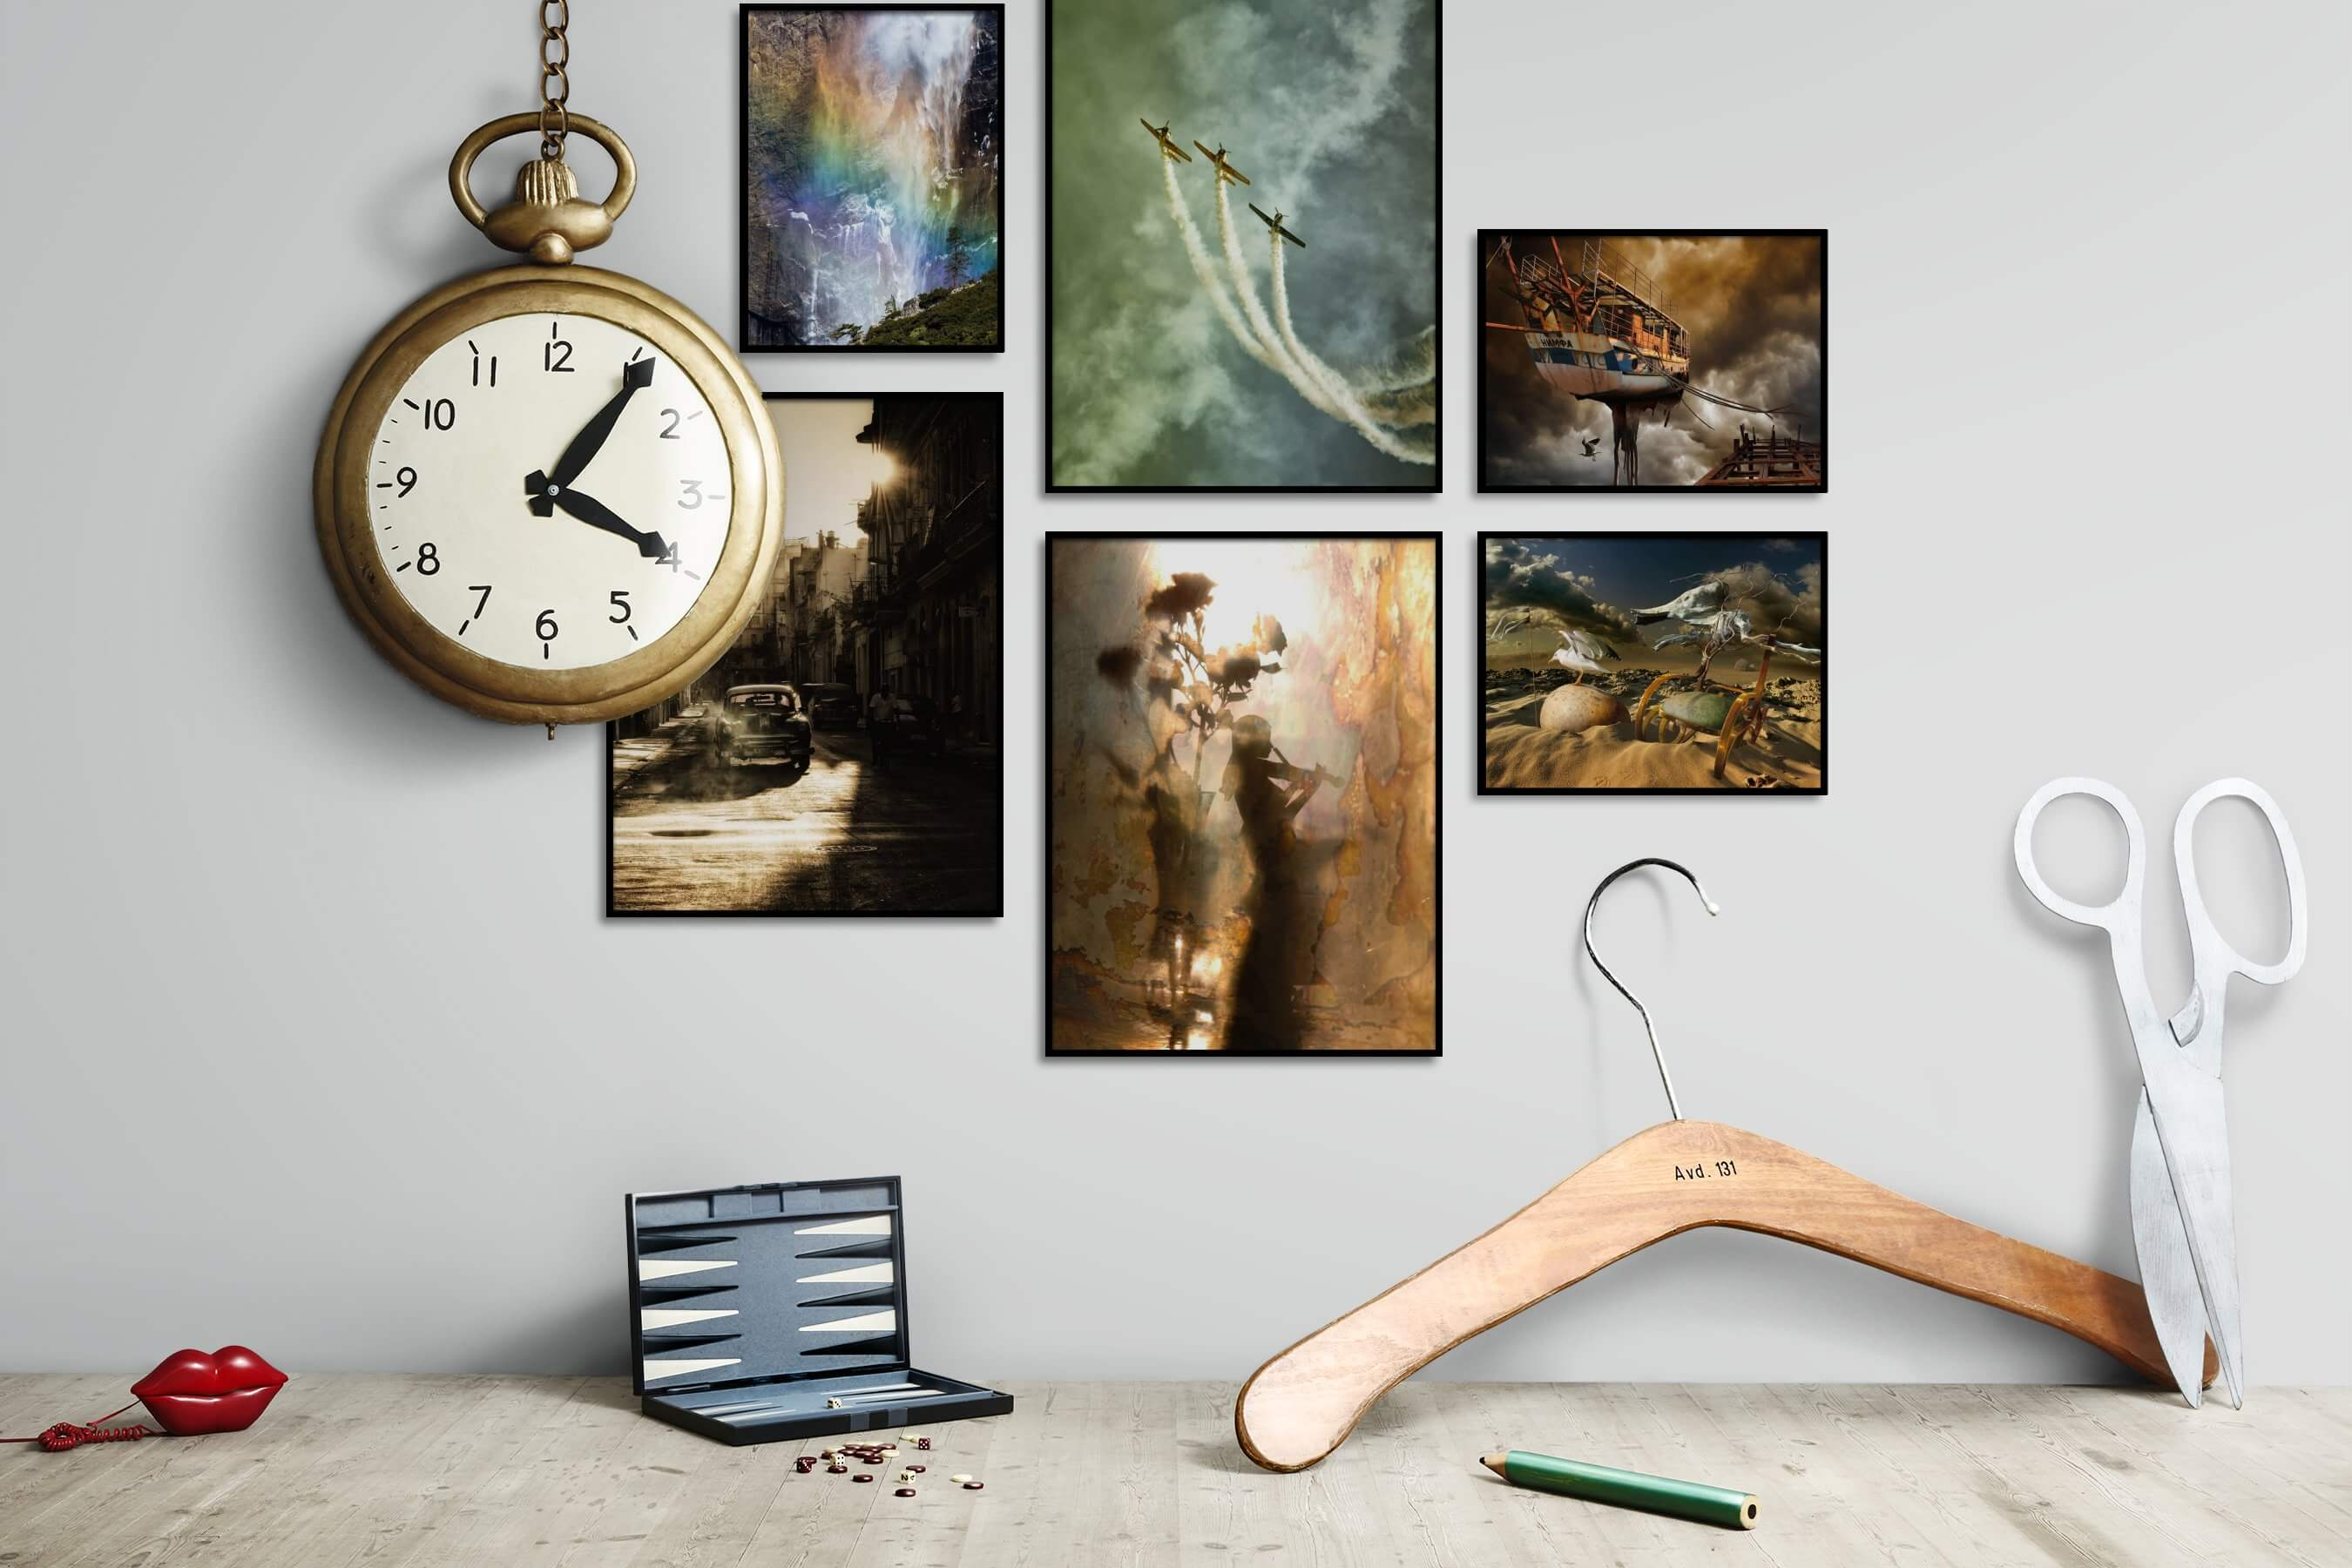 Gallery wall idea with six framed pictures arranged on a wall depicting Nature, For the Moderate, City Life, Vintage, and Artsy